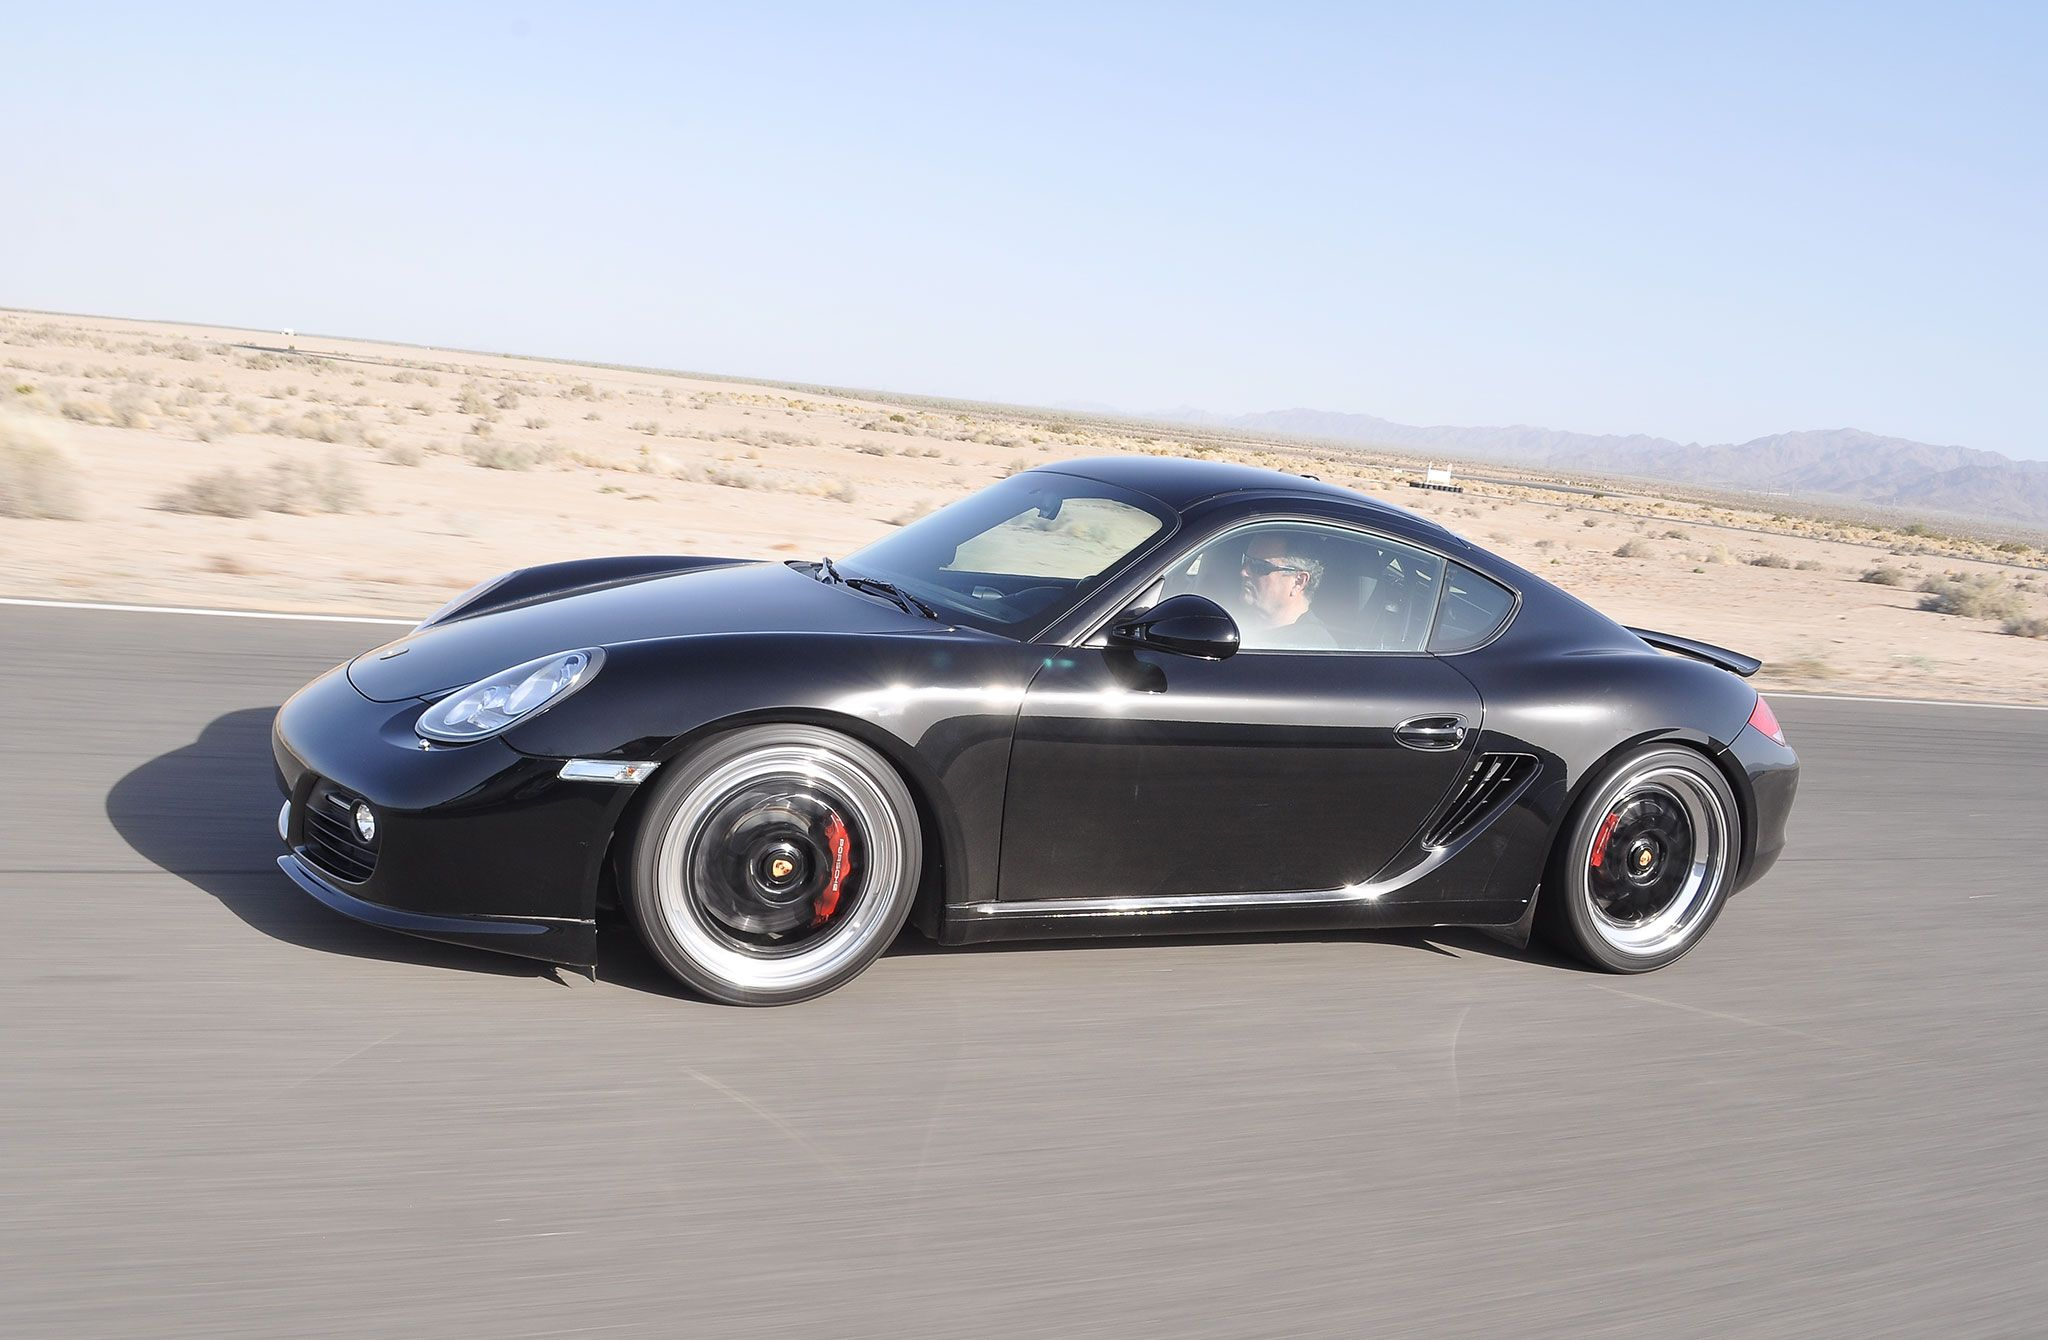 Porsche Cayman S 2009 photo - 8